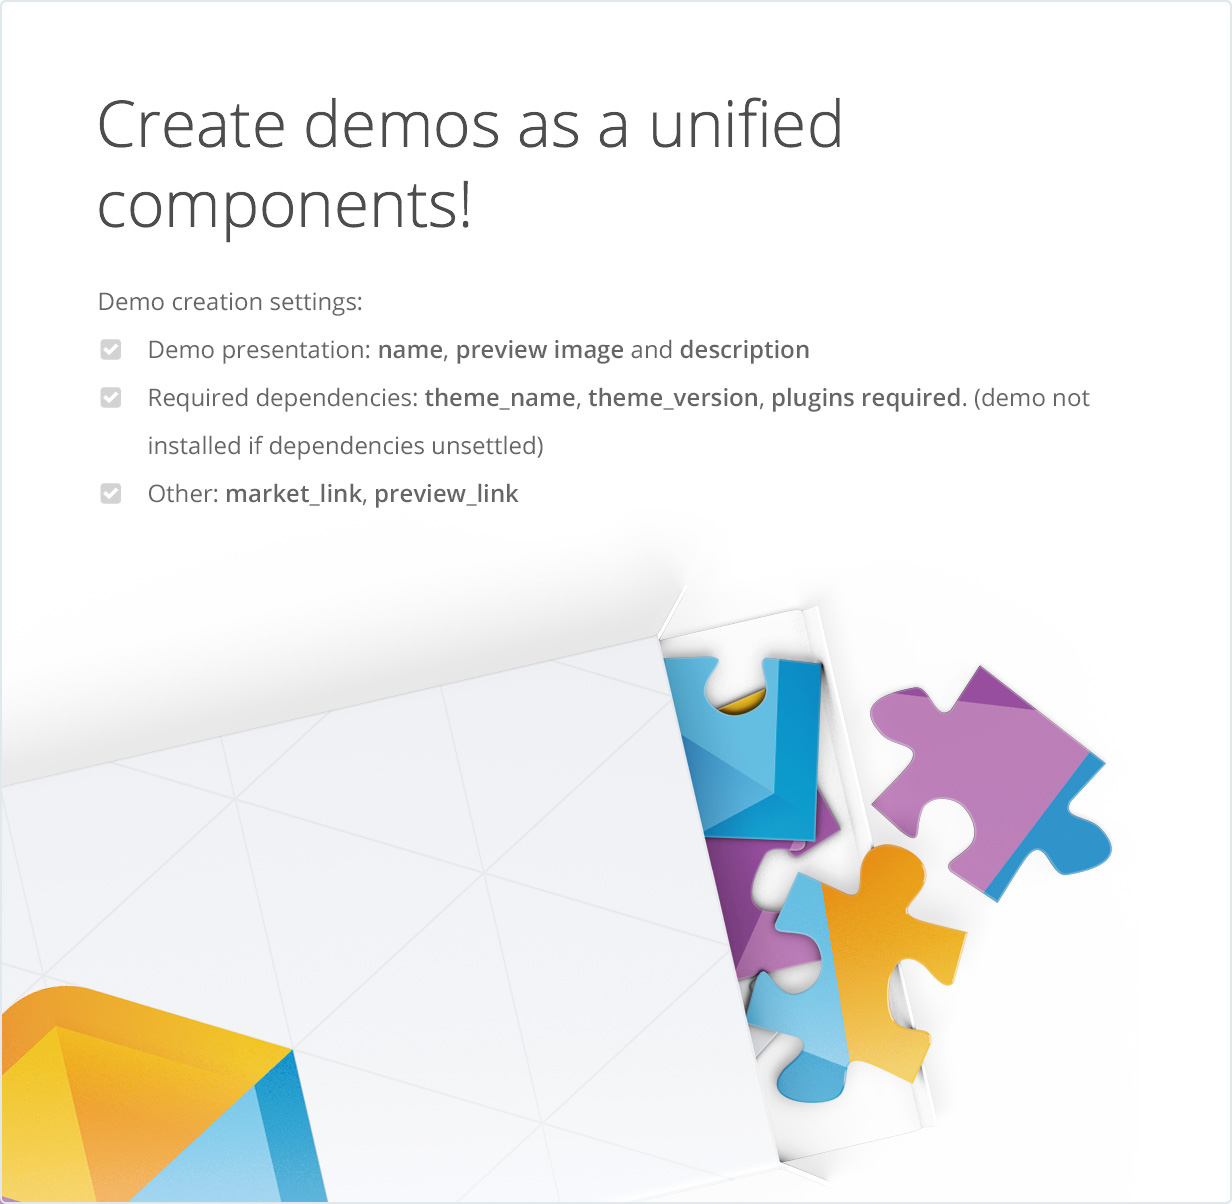 Create demos as a unified components!